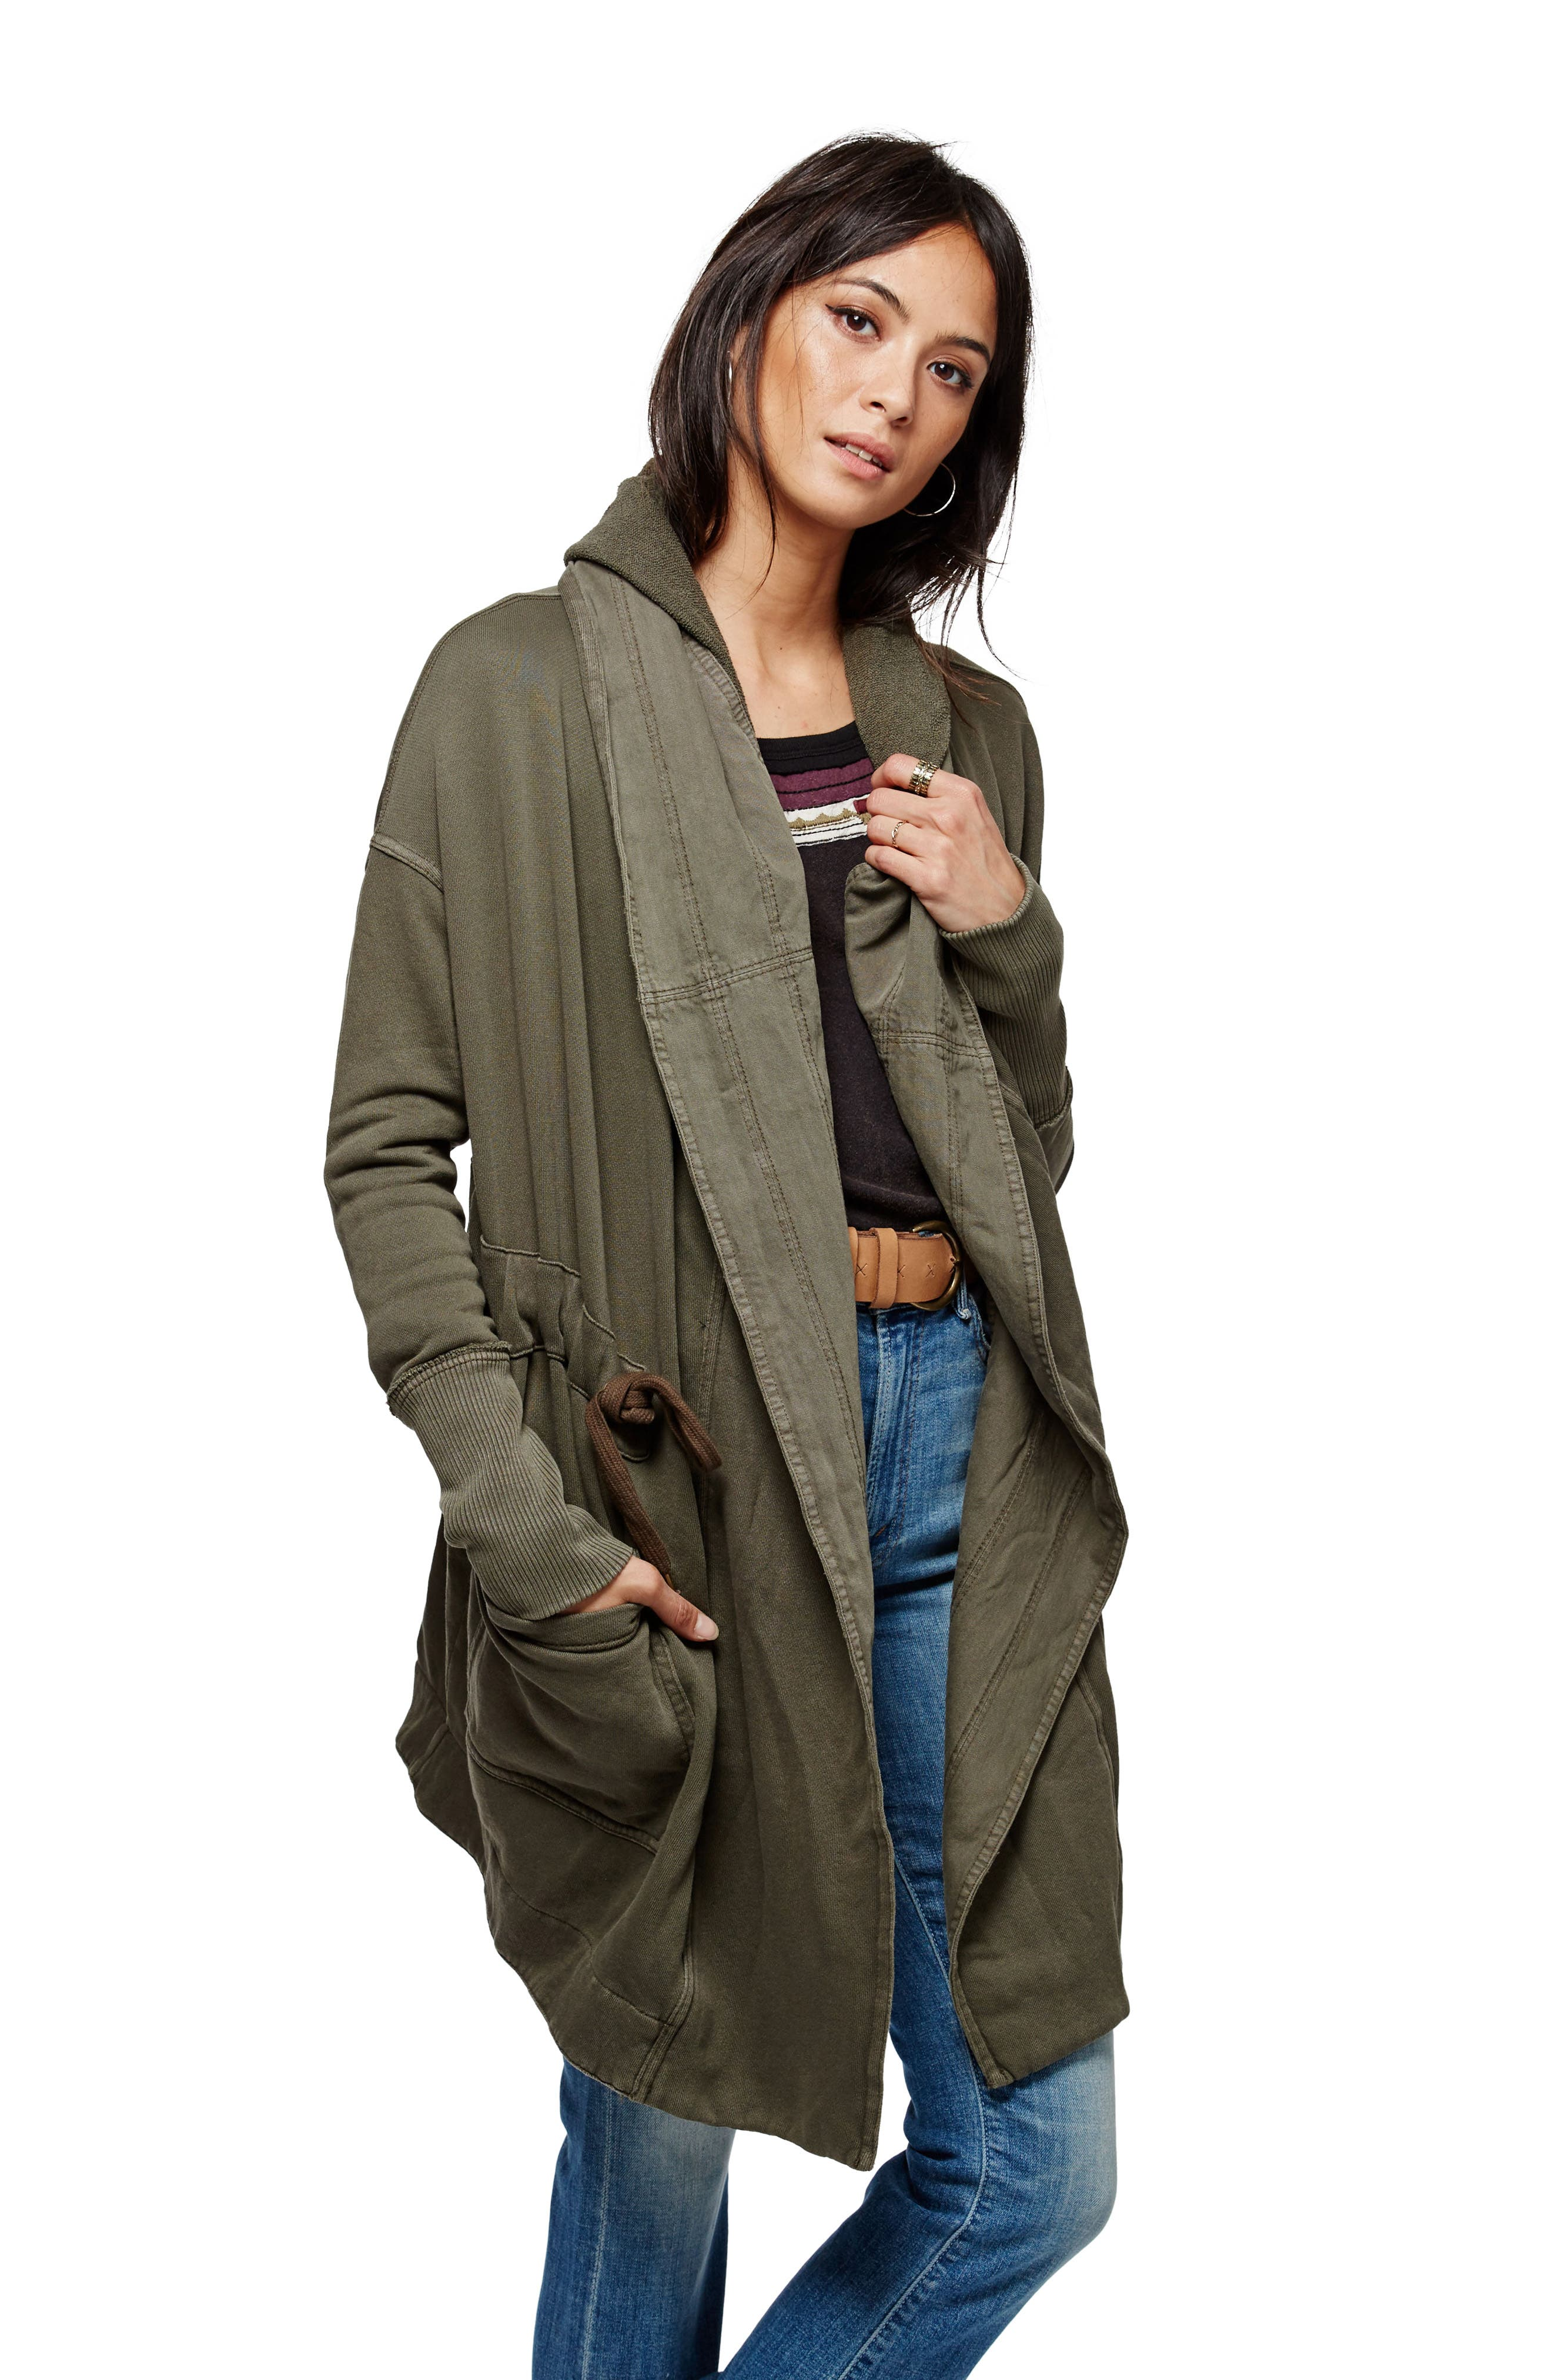 FREE PEOPLE, Brentwood Cotton Cardigan, Main thumbnail 1, color, 350